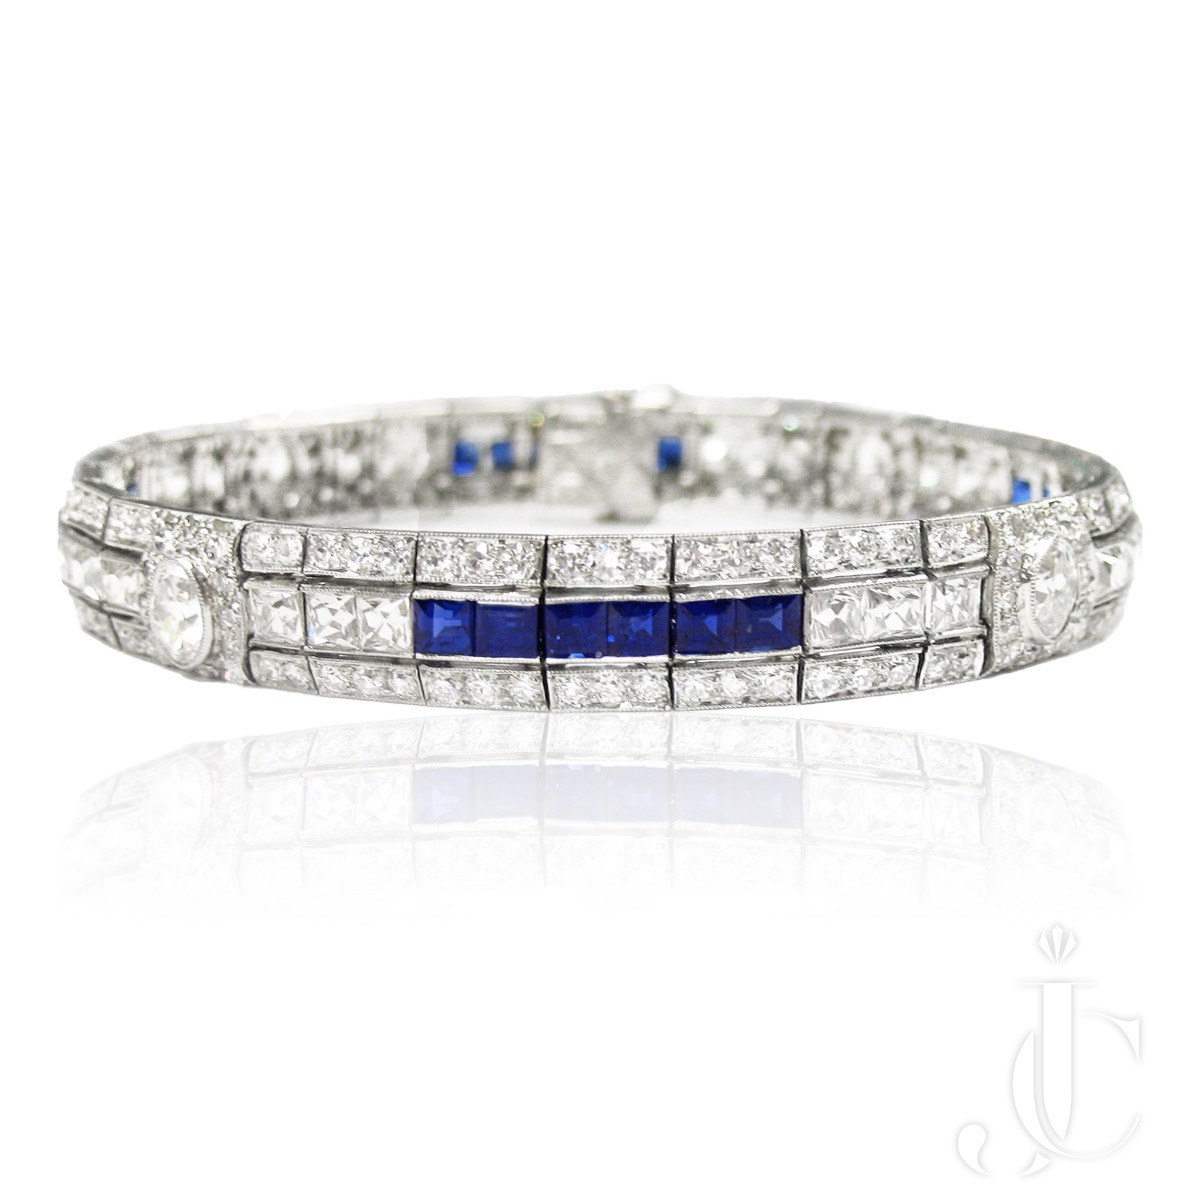 Tiffany Art Deco Platinum Sapphire and Diamond Bracelet with French Cuts